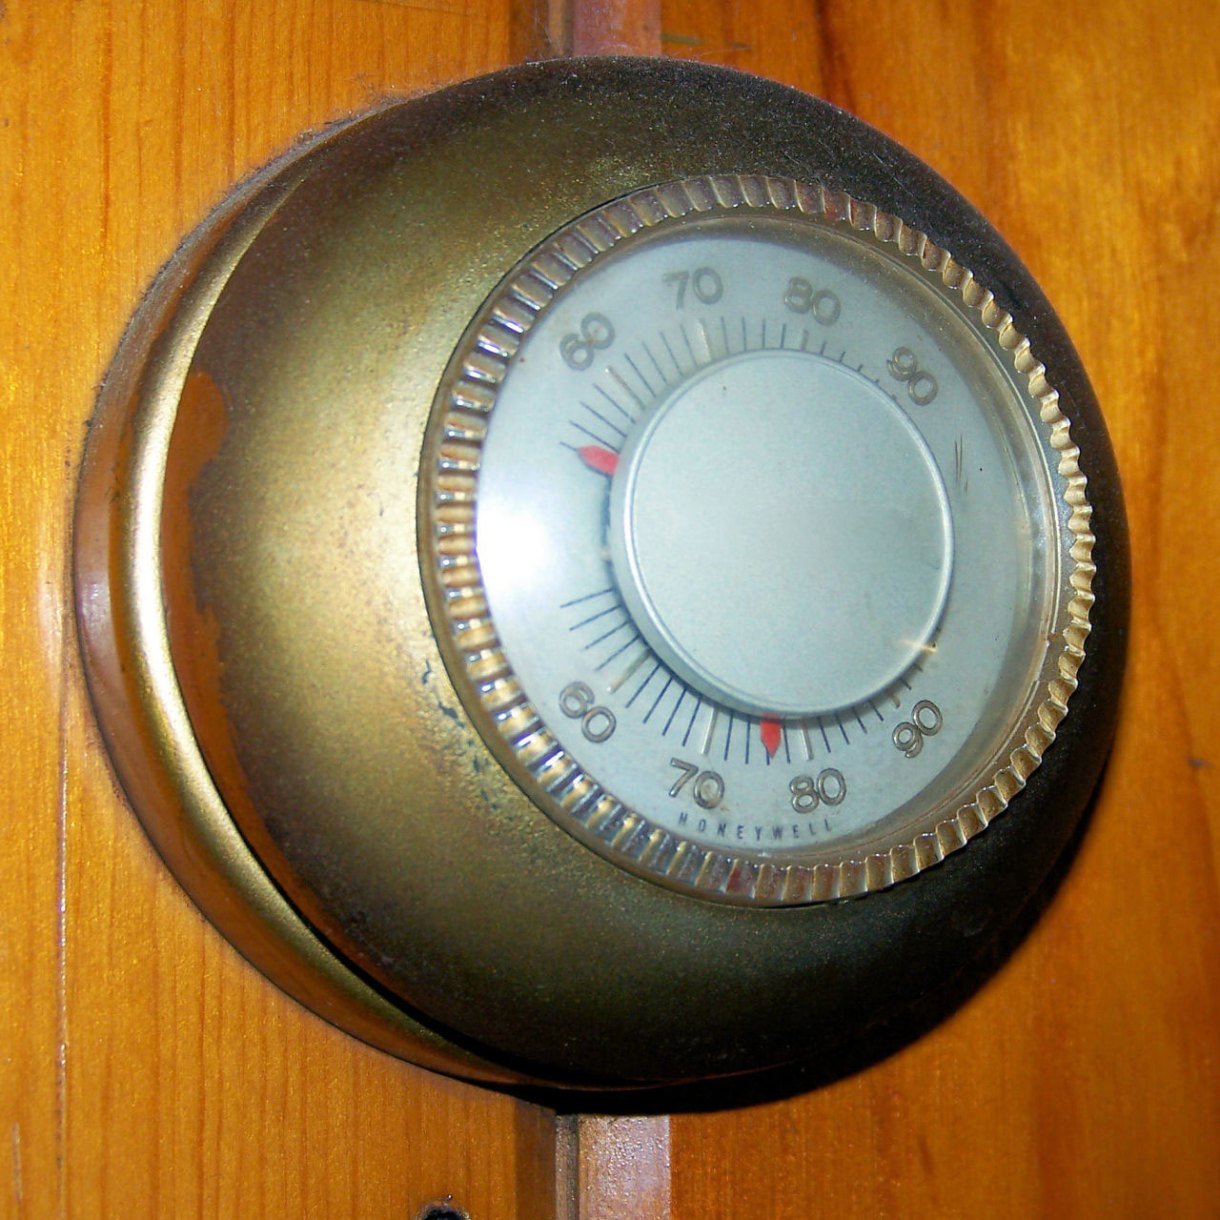 Old Thermostat Free Stock Photo - Public Domain Pictures